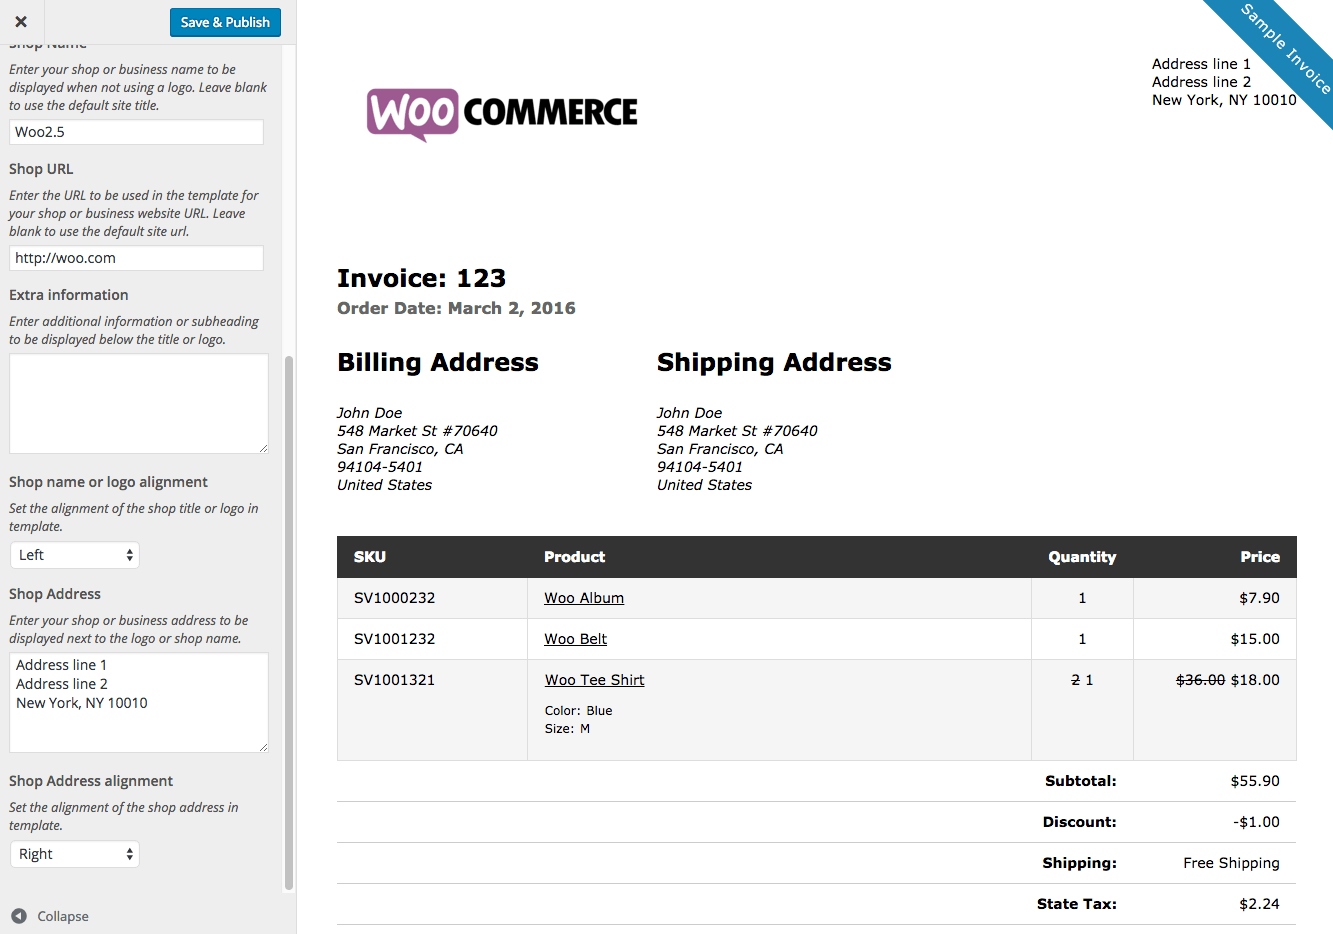 Usdgus  Seductive Print Invoices Amp Packing Lists  Woocommerce With Gorgeous Woocommerce Print Invoices  Packing Lists Customizer With Awesome Gas Receipt Also Menards Receipt In Addition Amazon Receipt And Rent Receipts As Well As Jcpenney Return Policy With Receipt Additionally Deposit Receipt From Woocommercecom With Usdgus  Gorgeous Print Invoices Amp Packing Lists  Woocommerce With Awesome Woocommerce Print Invoices  Packing Lists Customizer And Seductive Gas Receipt Also Menards Receipt In Addition Amazon Receipt From Woocommercecom